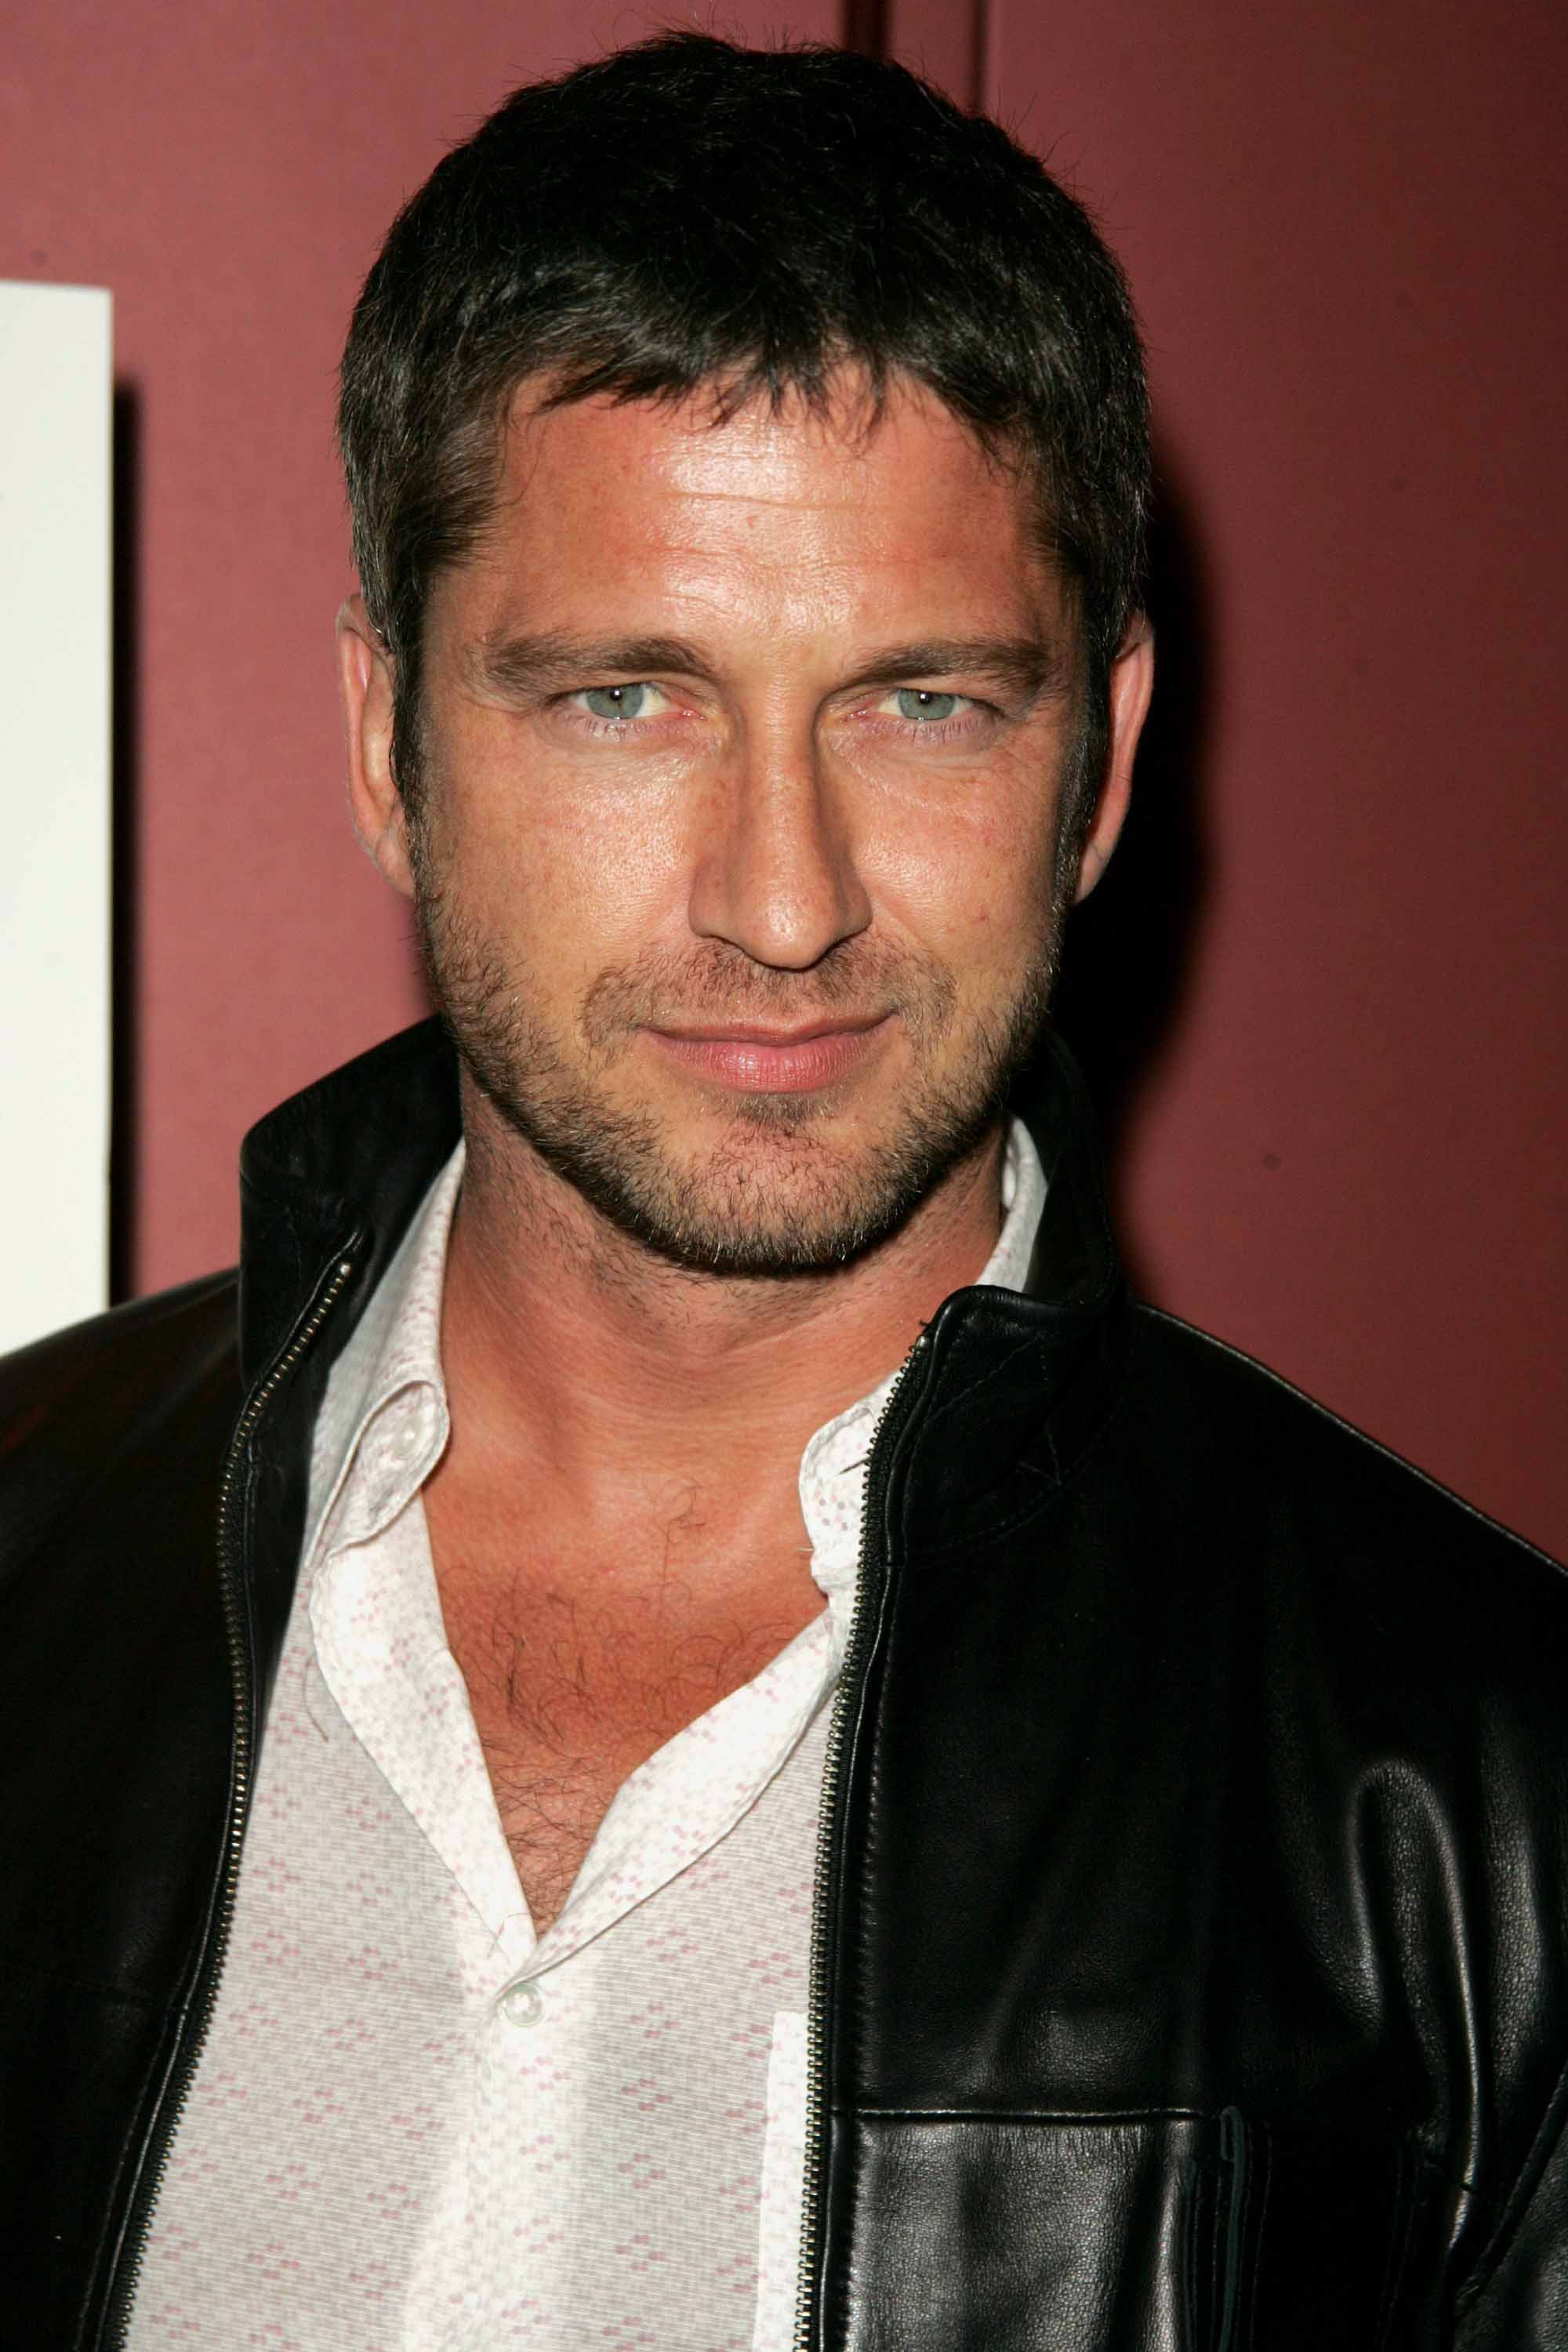 Gerard Butler You Think He S Hot Enough In Pics Then He Speaks And The Accent Really Throws You Over The Edge Gerard Butler Most Handsome Men Handsome Men